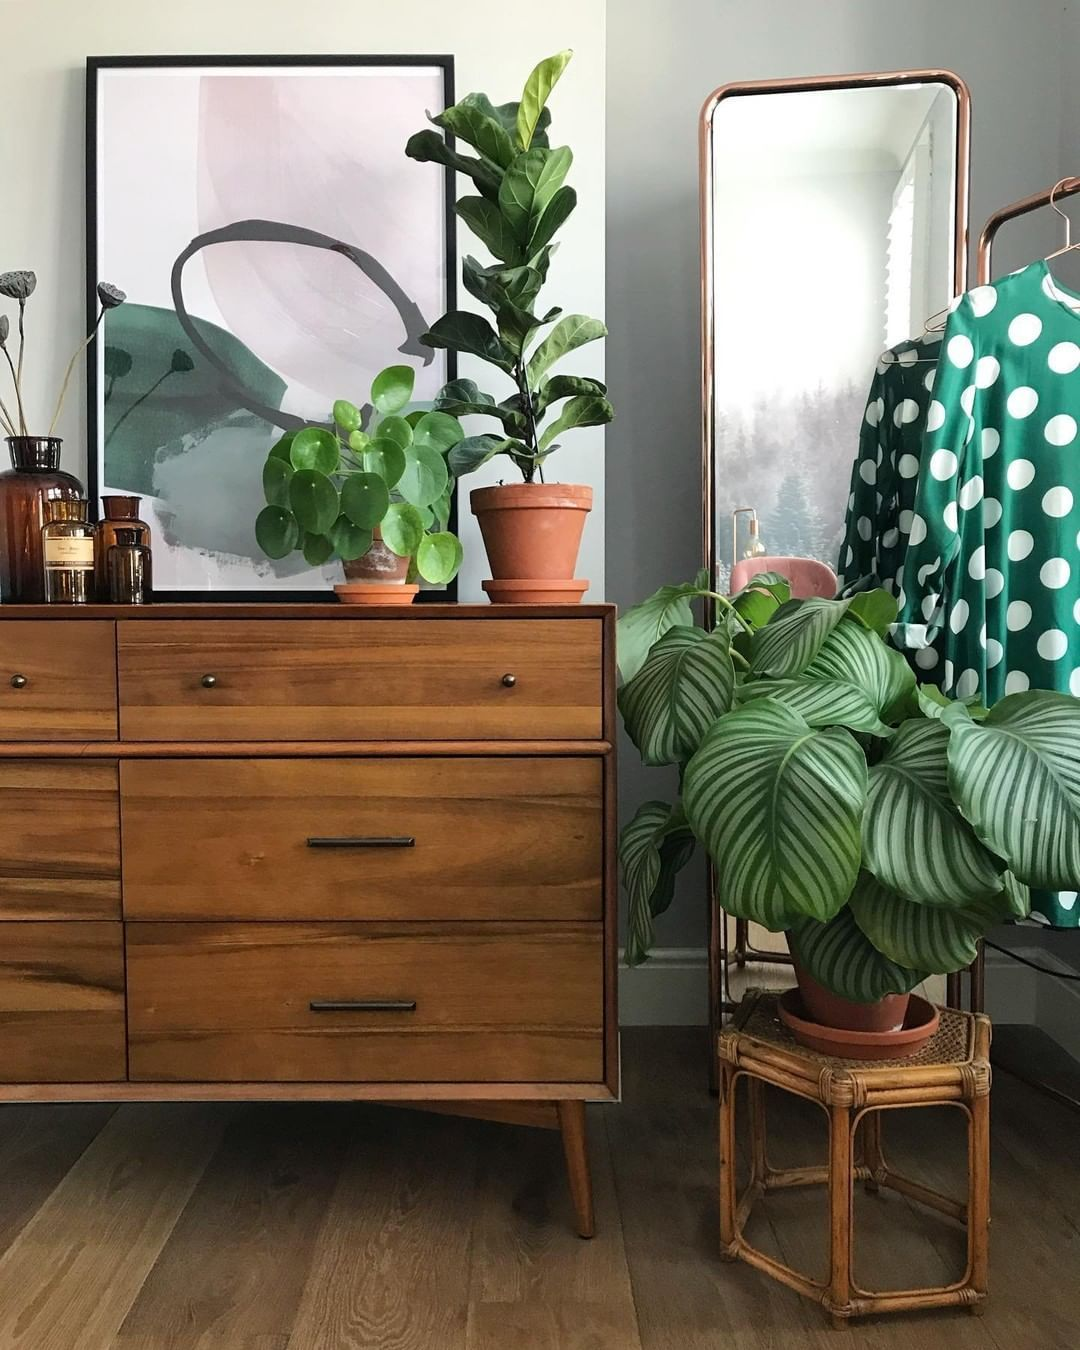 West Elm Furniture Decor On Instagram Bring Your Wardrobe To Life With The Fairtradecertified Mid Century 6 Drawer Dresser And Dresser Drawers 6 Drawer Dresser Plant Decor